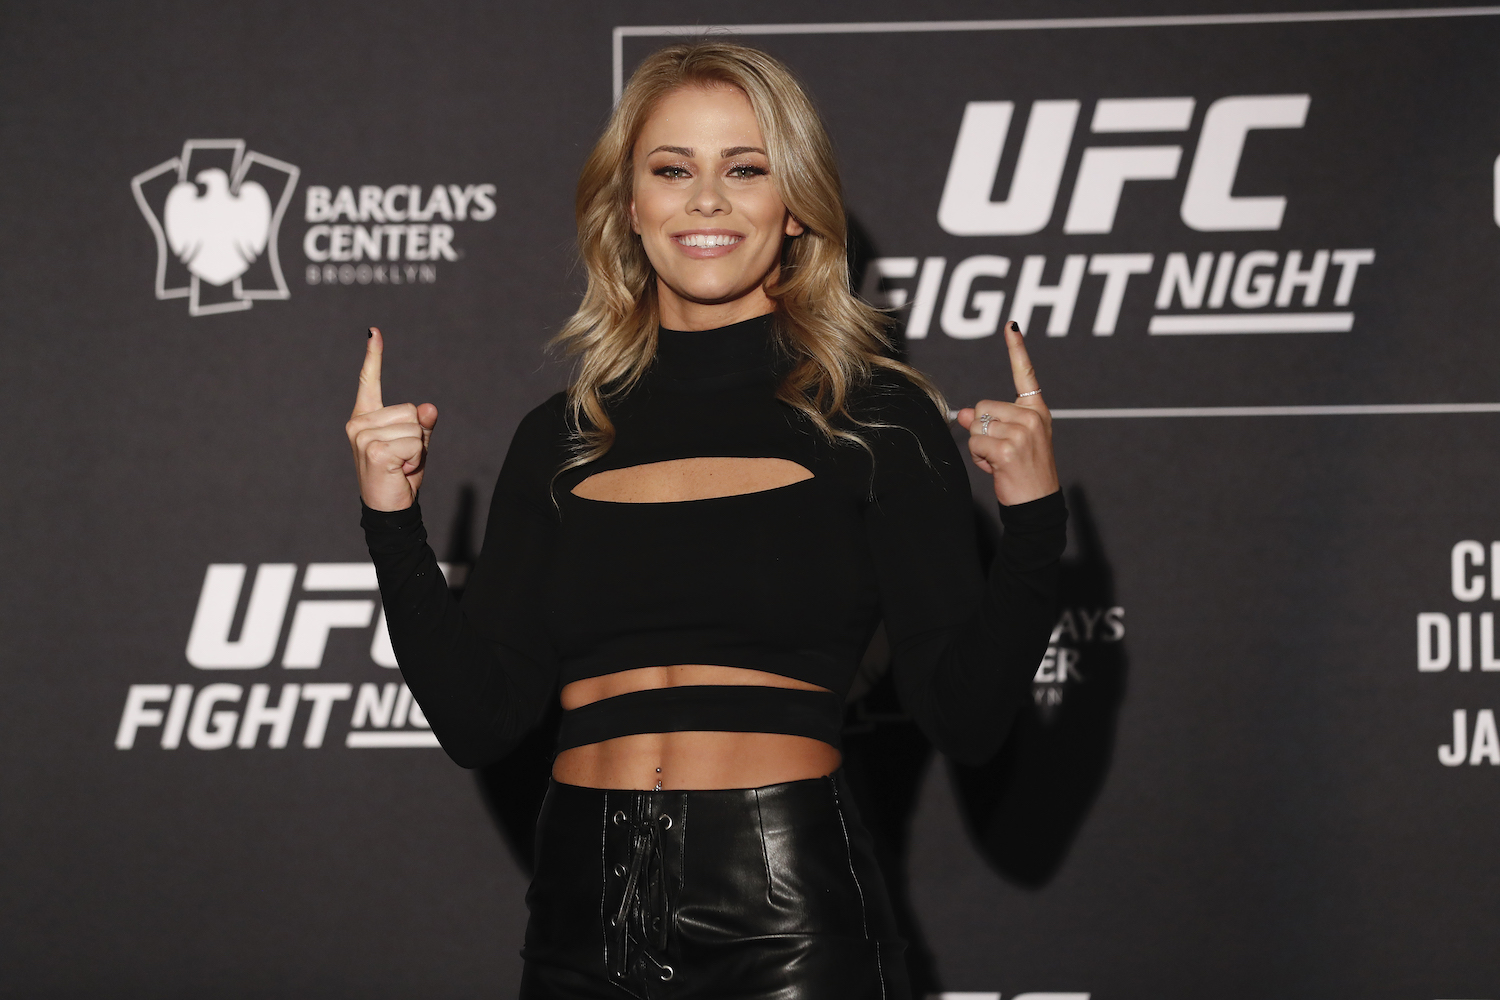 UFC's Paige VanZant Regularly Posting Nudes on Instagram During Pandemic